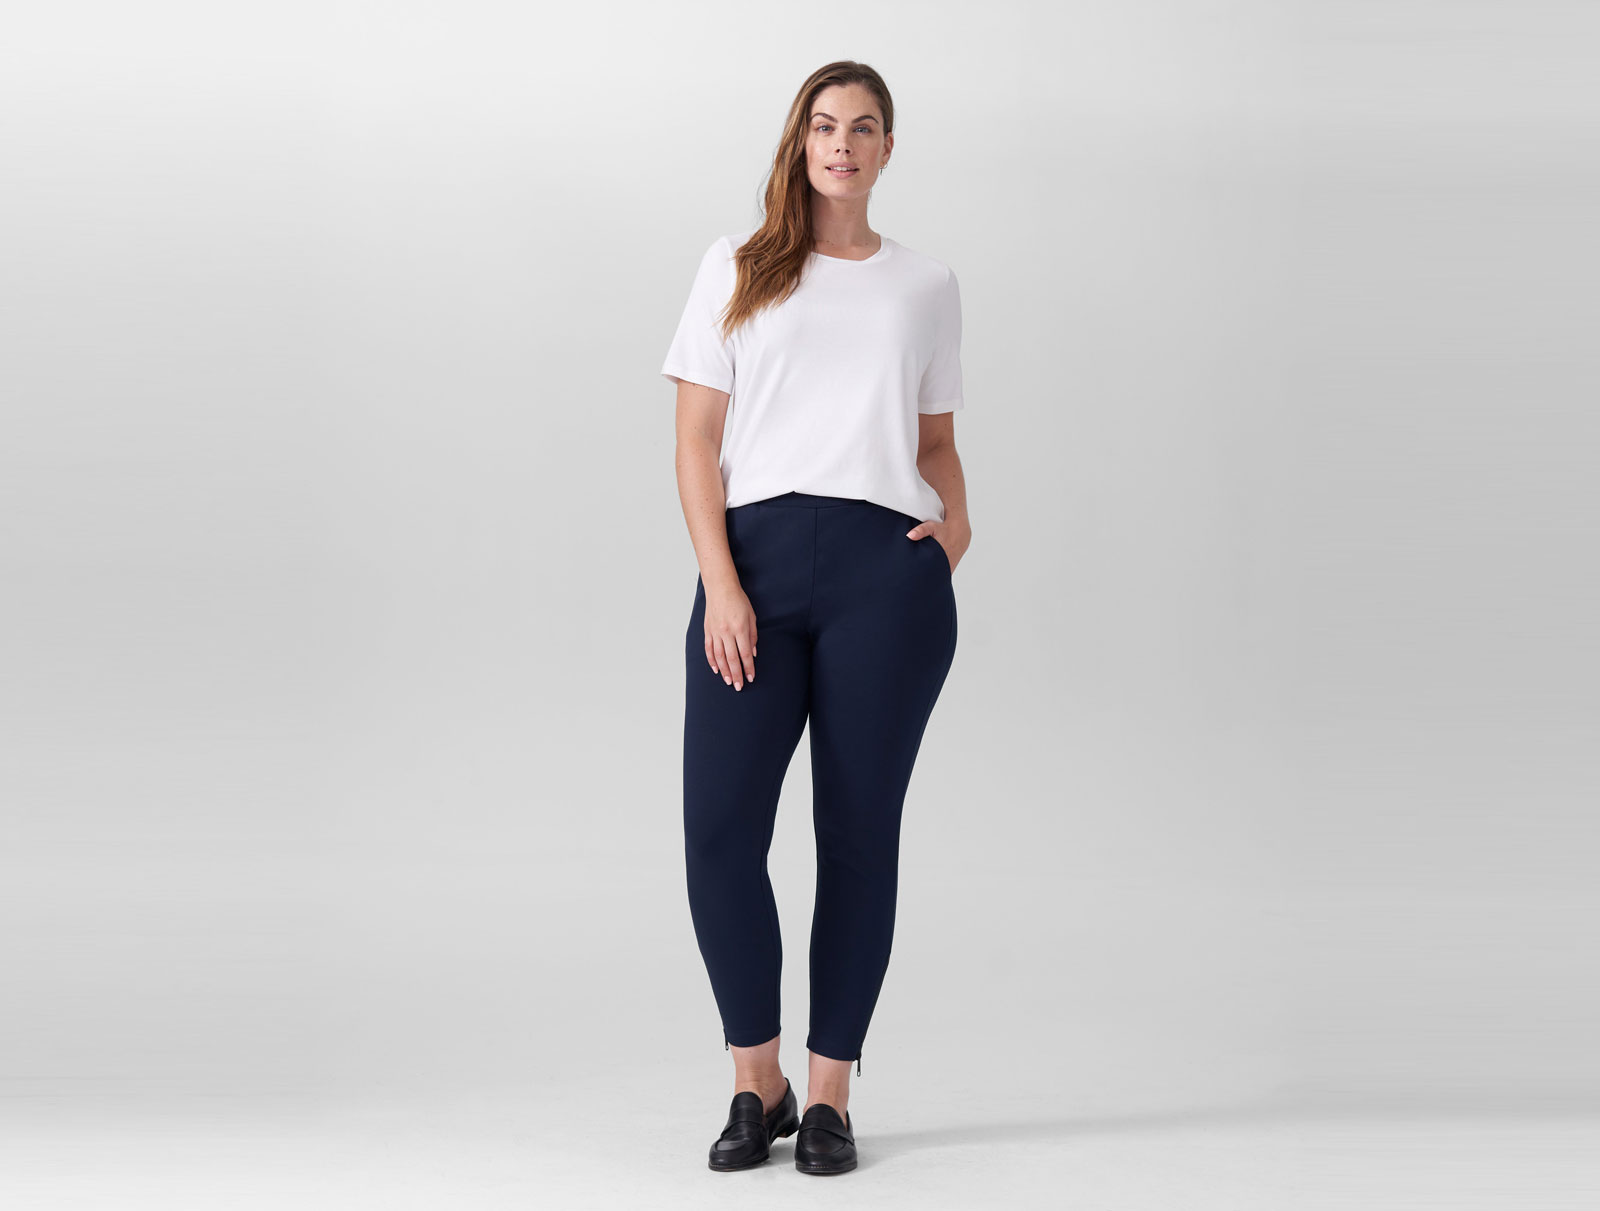 Woman wearing navy skinny pants